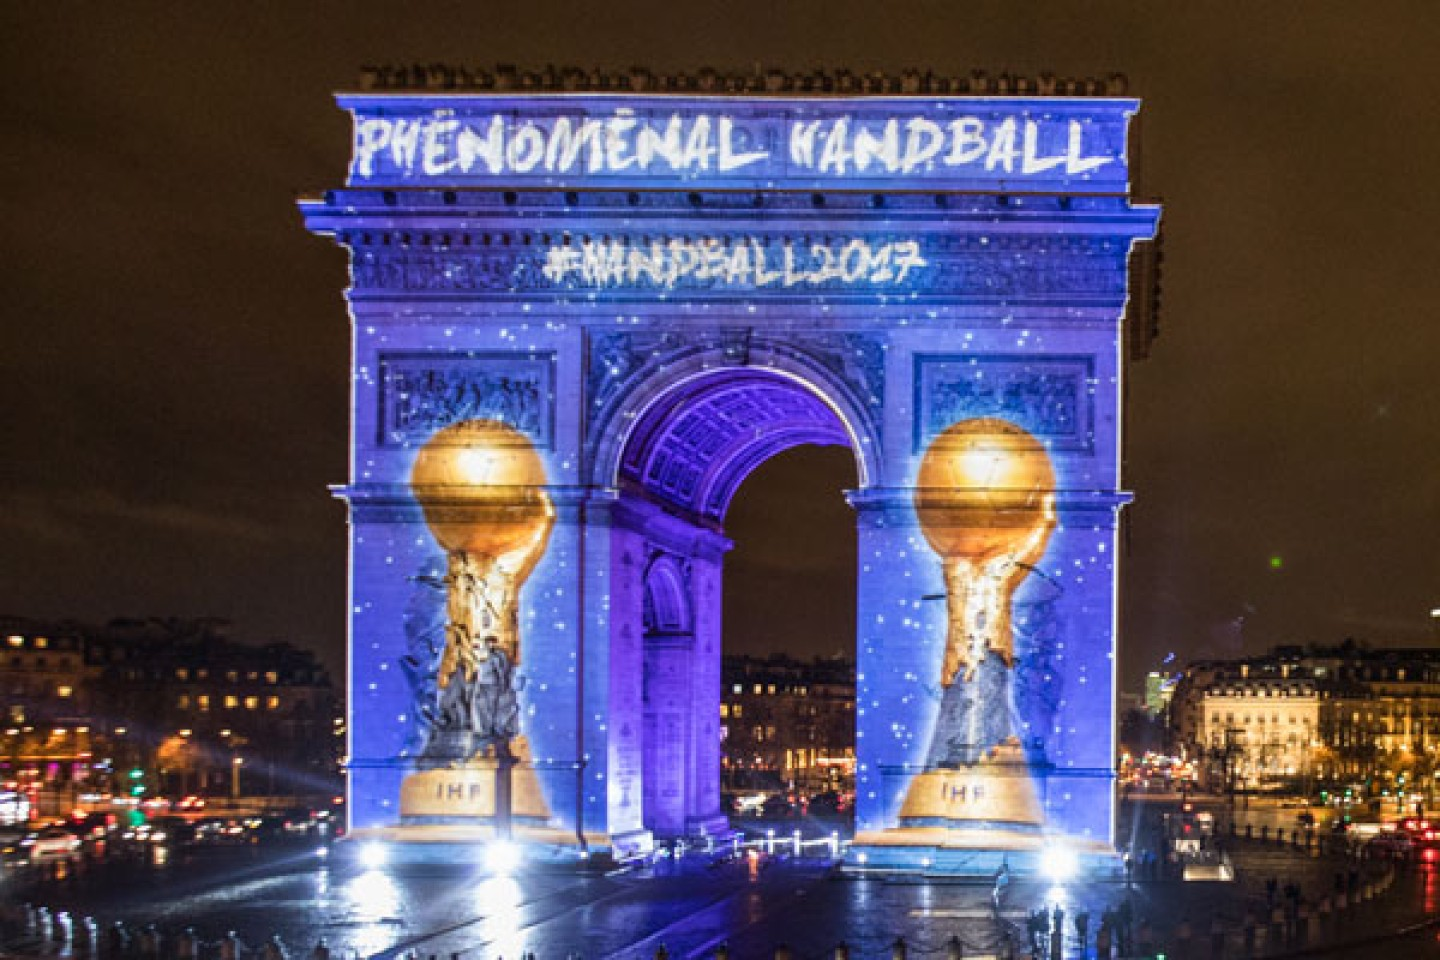 Arc-de-triomphe_Phenomenal